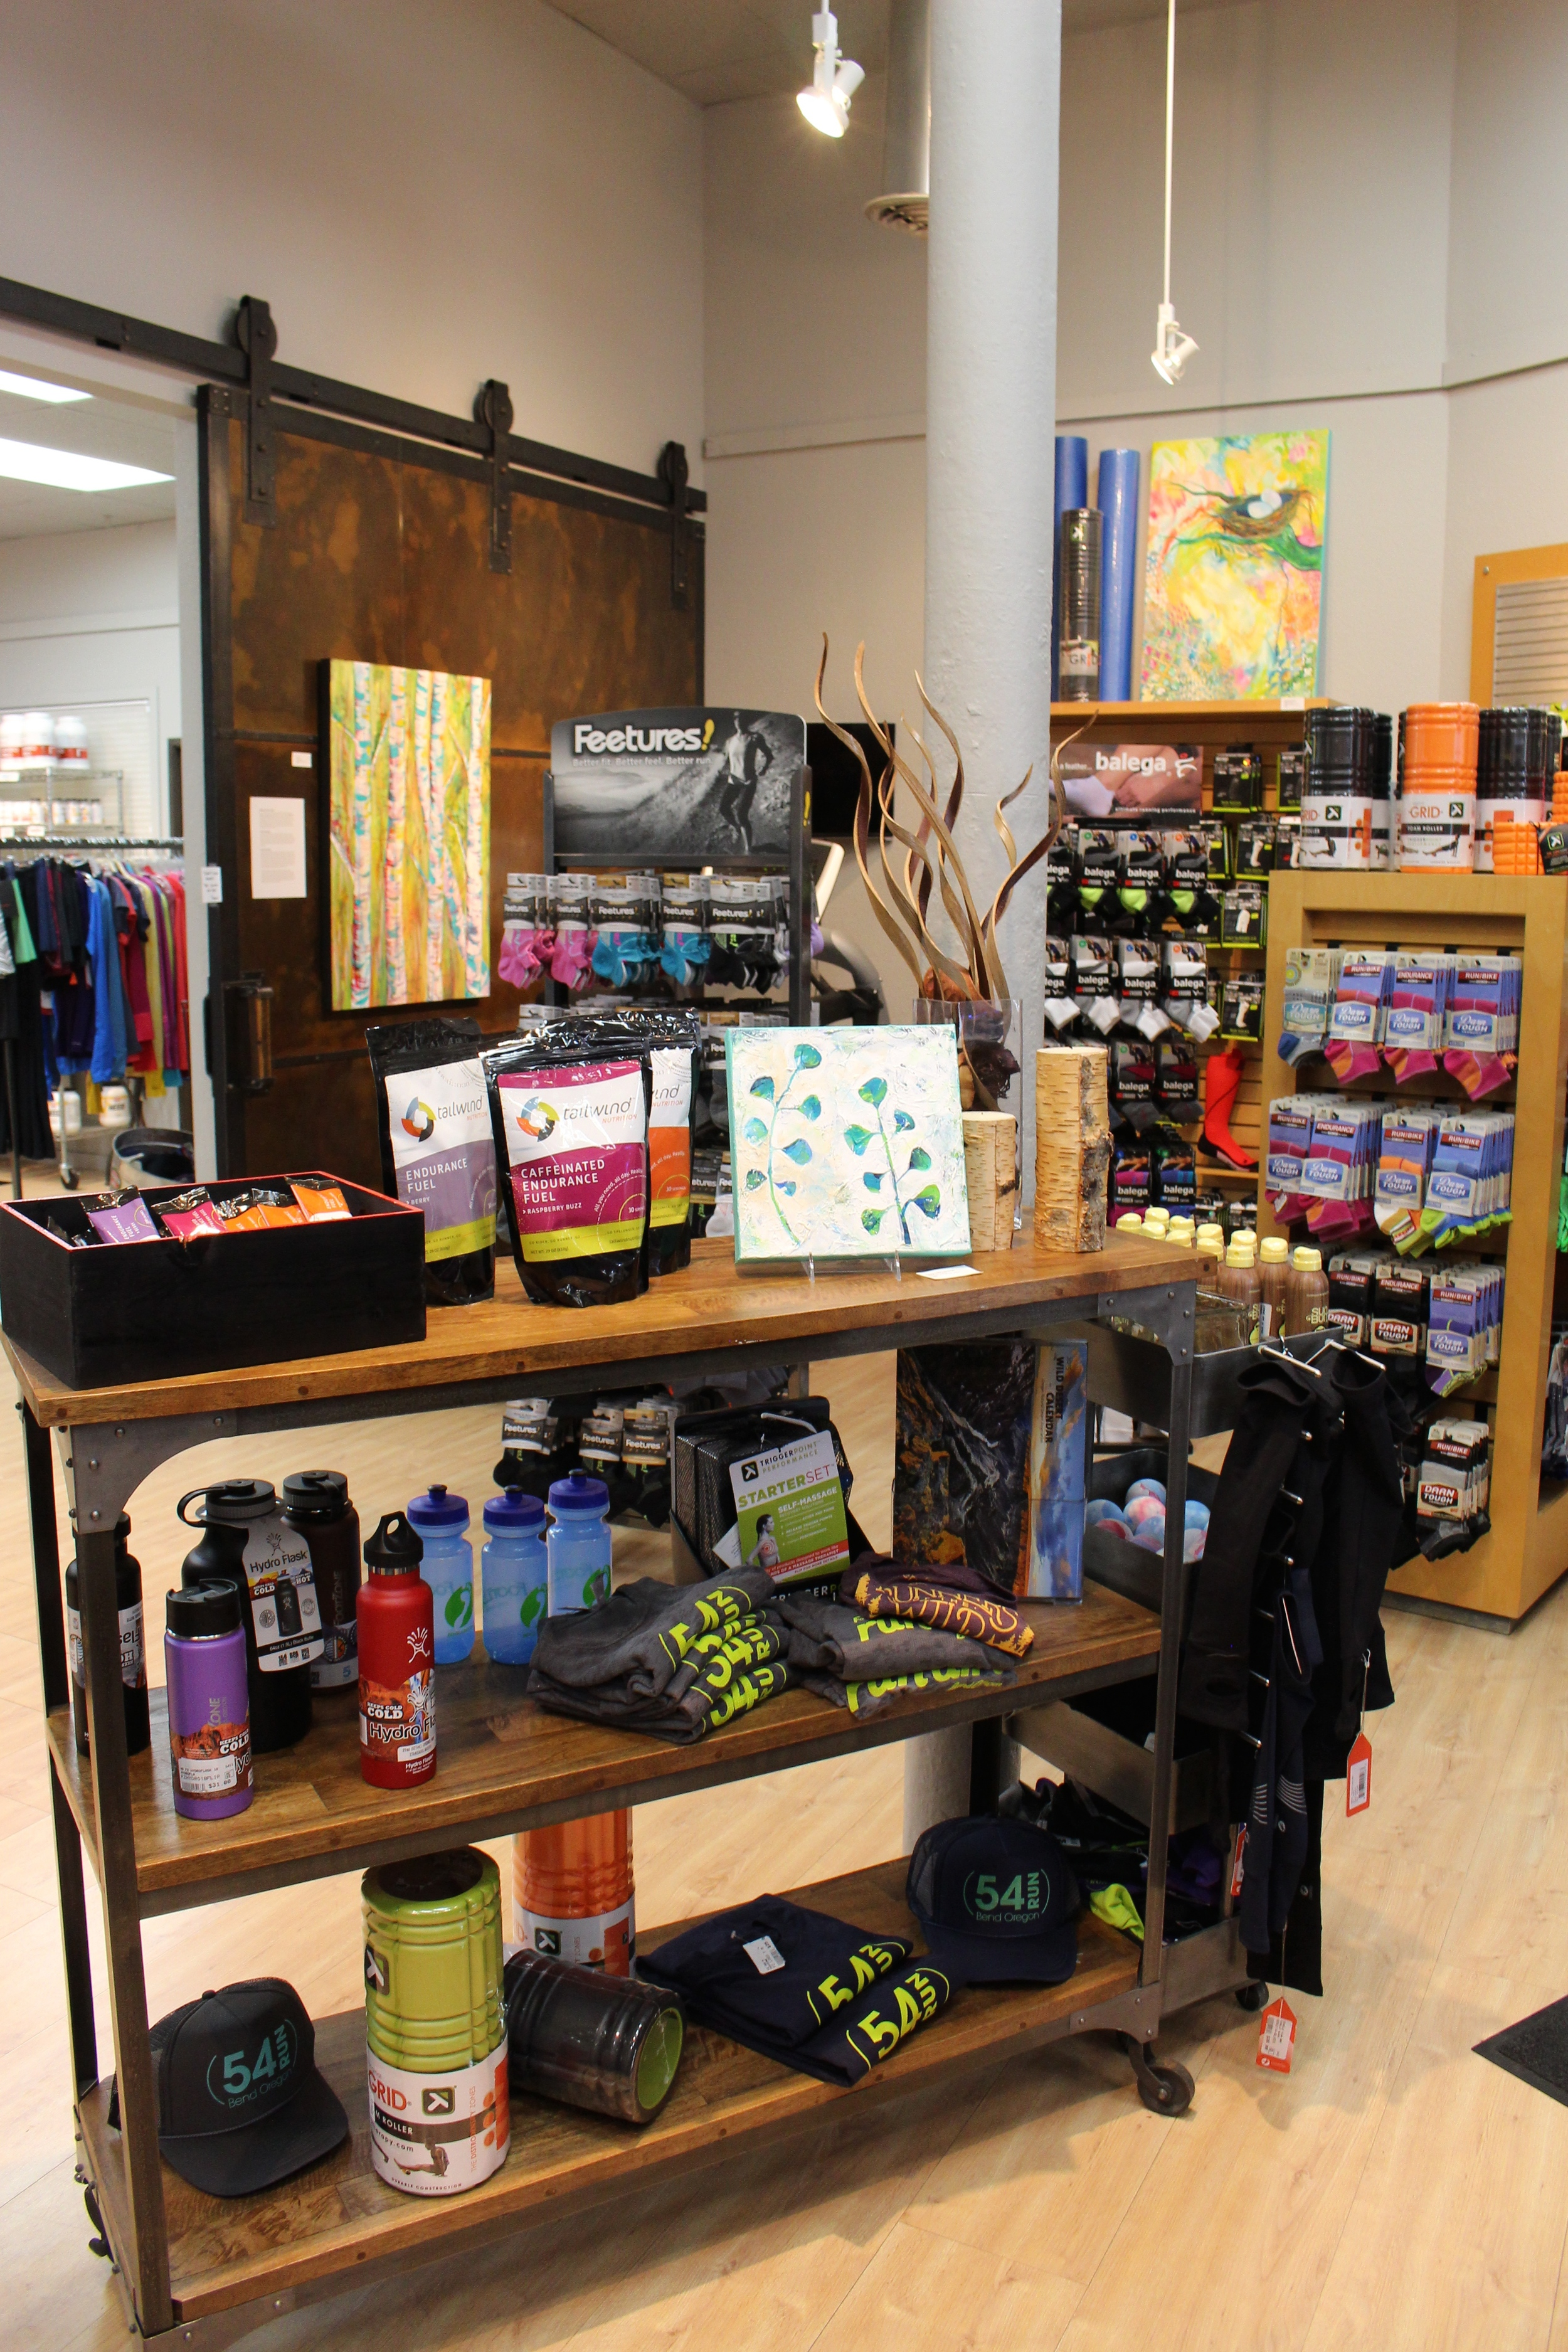 MaryLea Harris ART at FootZone in Bend, OR, February 2015 - Can you find the three paintings?